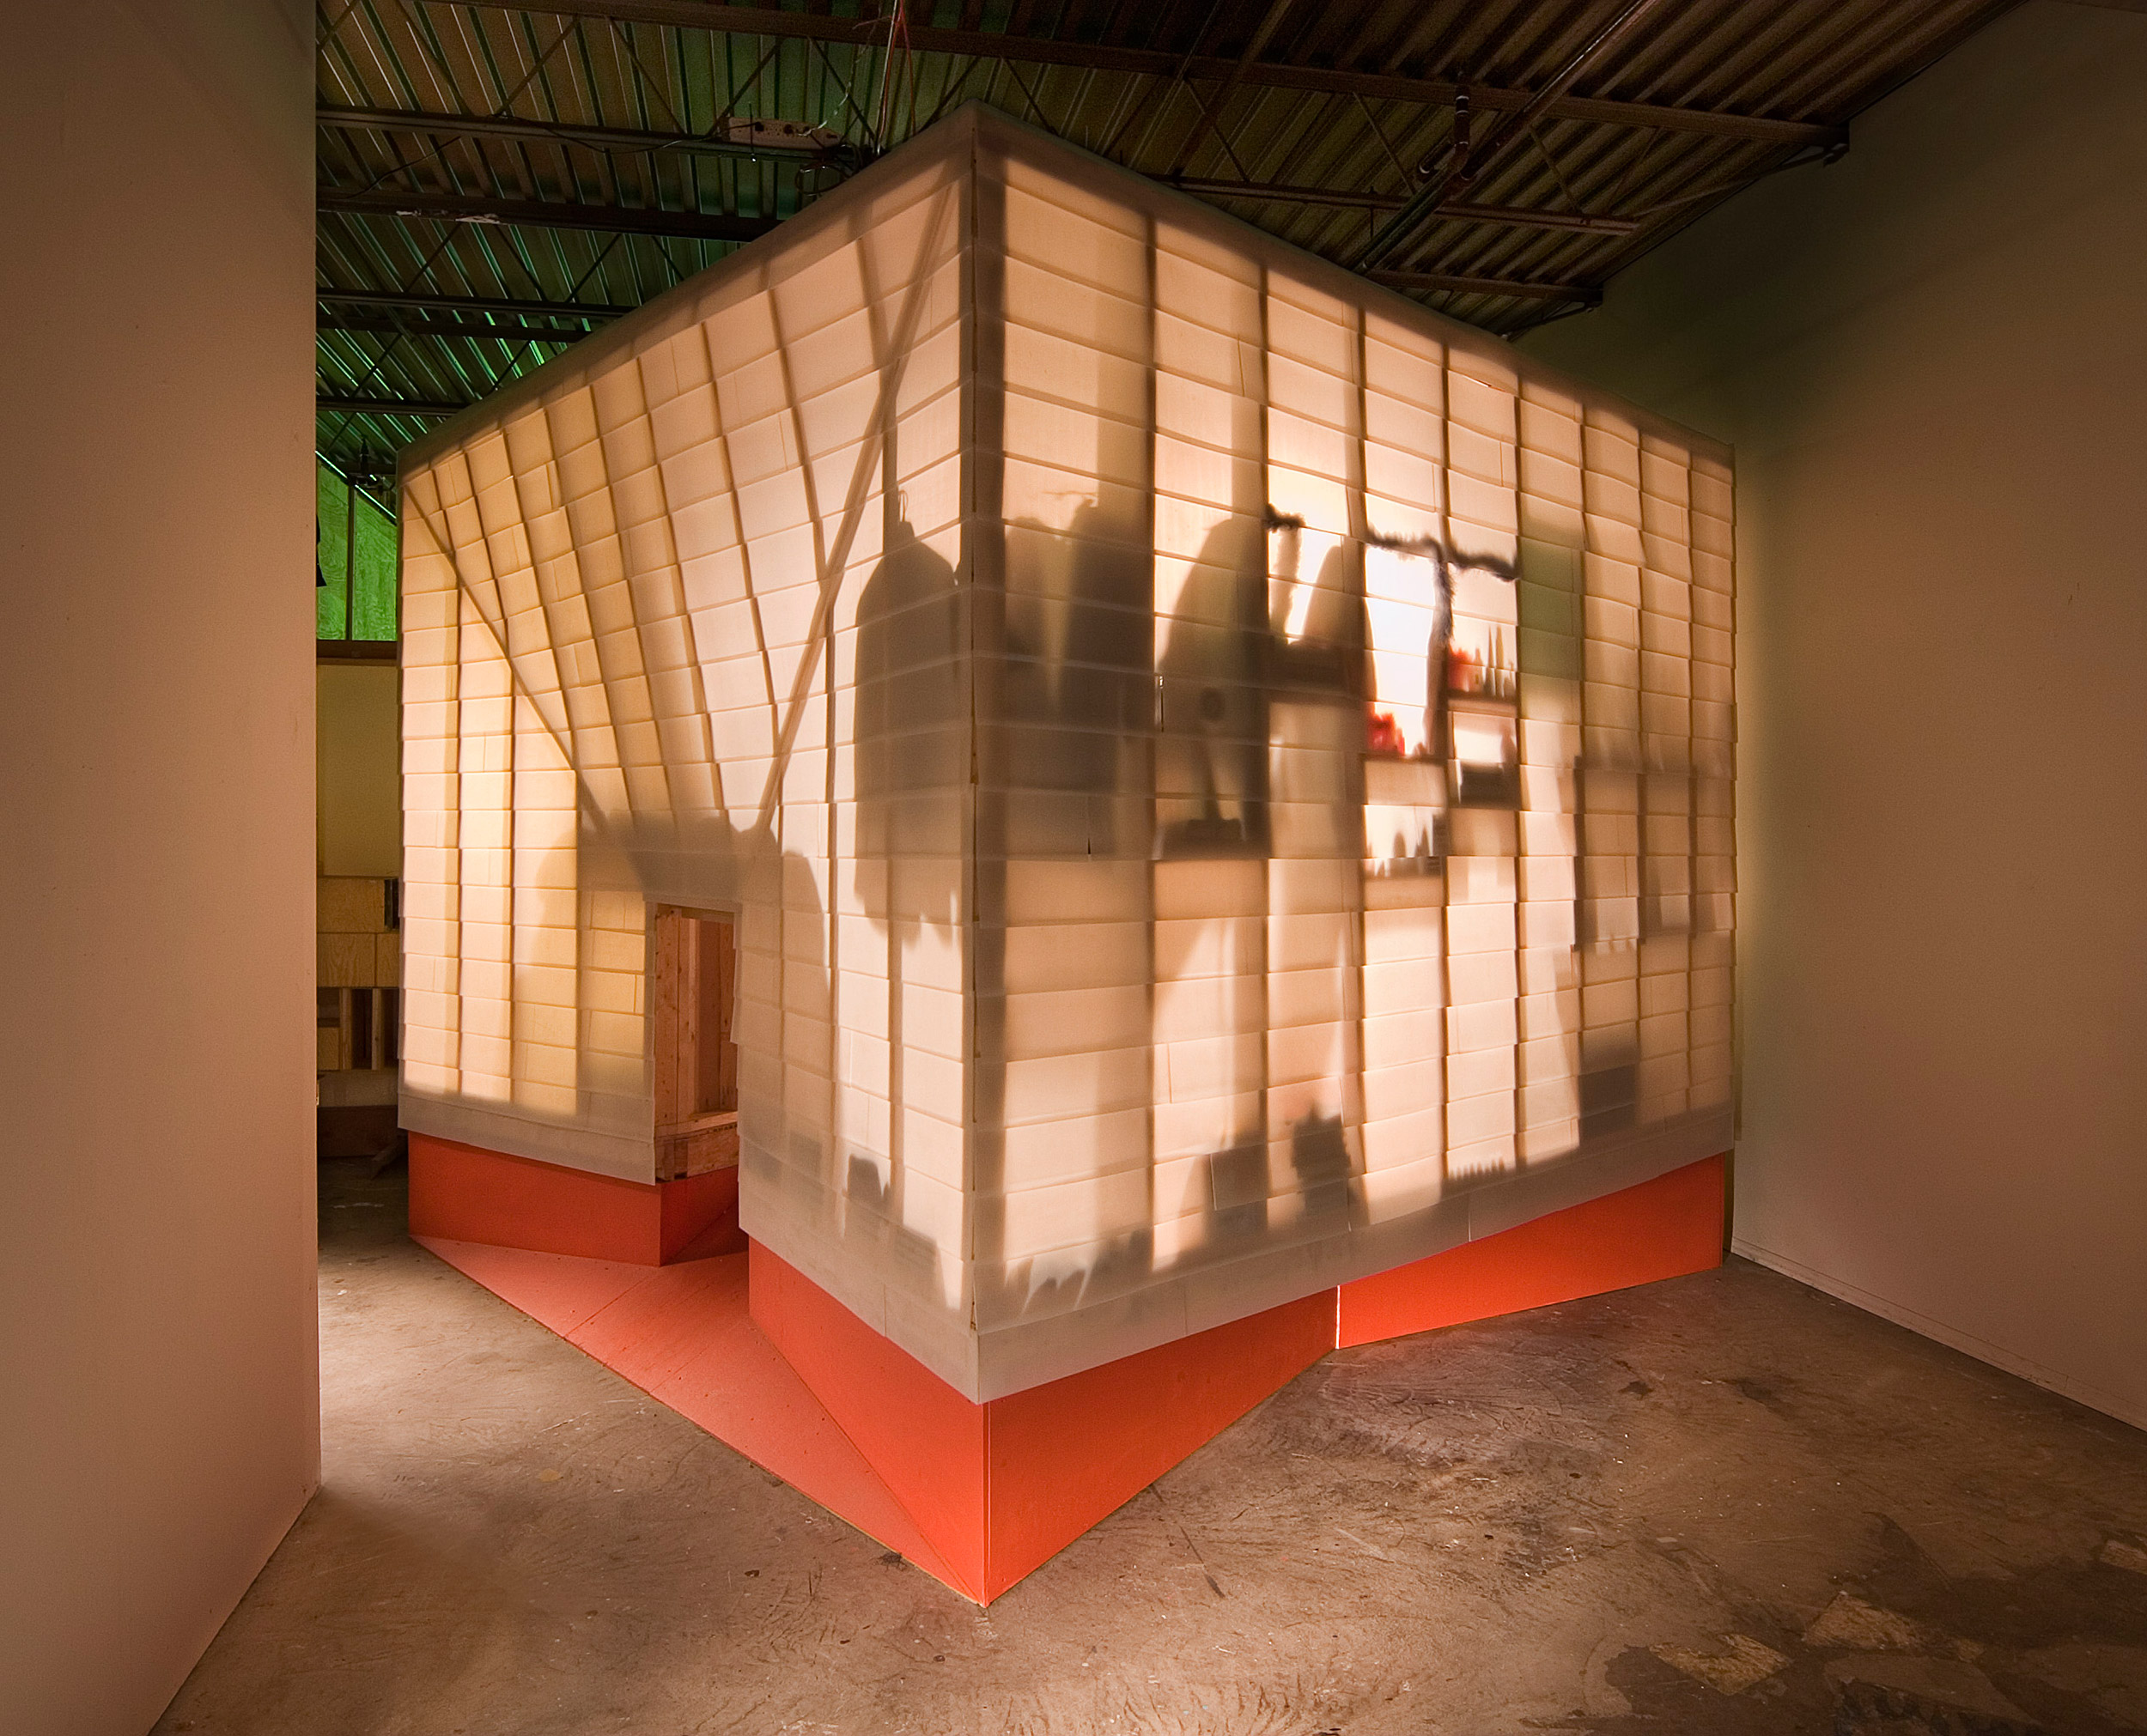 Writer's hut covered in translucent plastic shingles for experimental design project